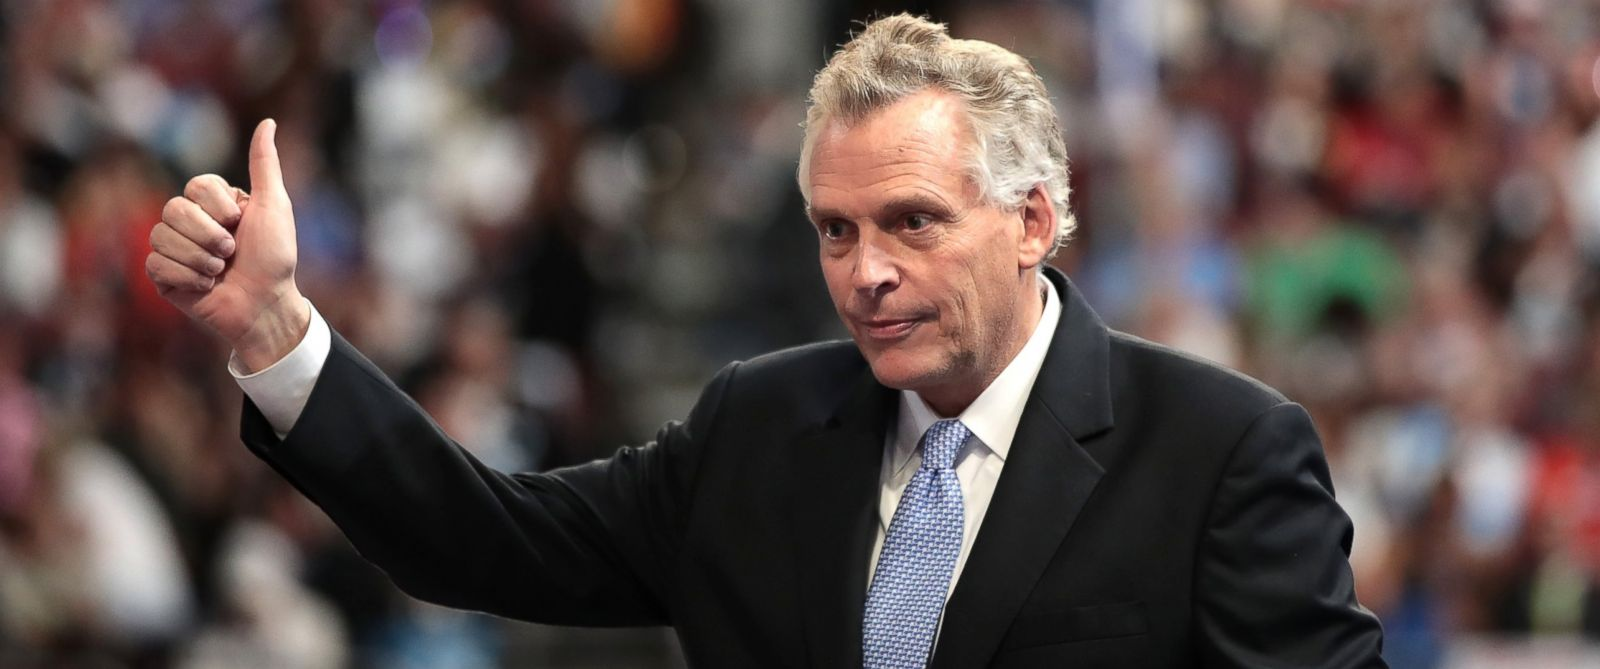 Image Result For Terry Mcauliffe